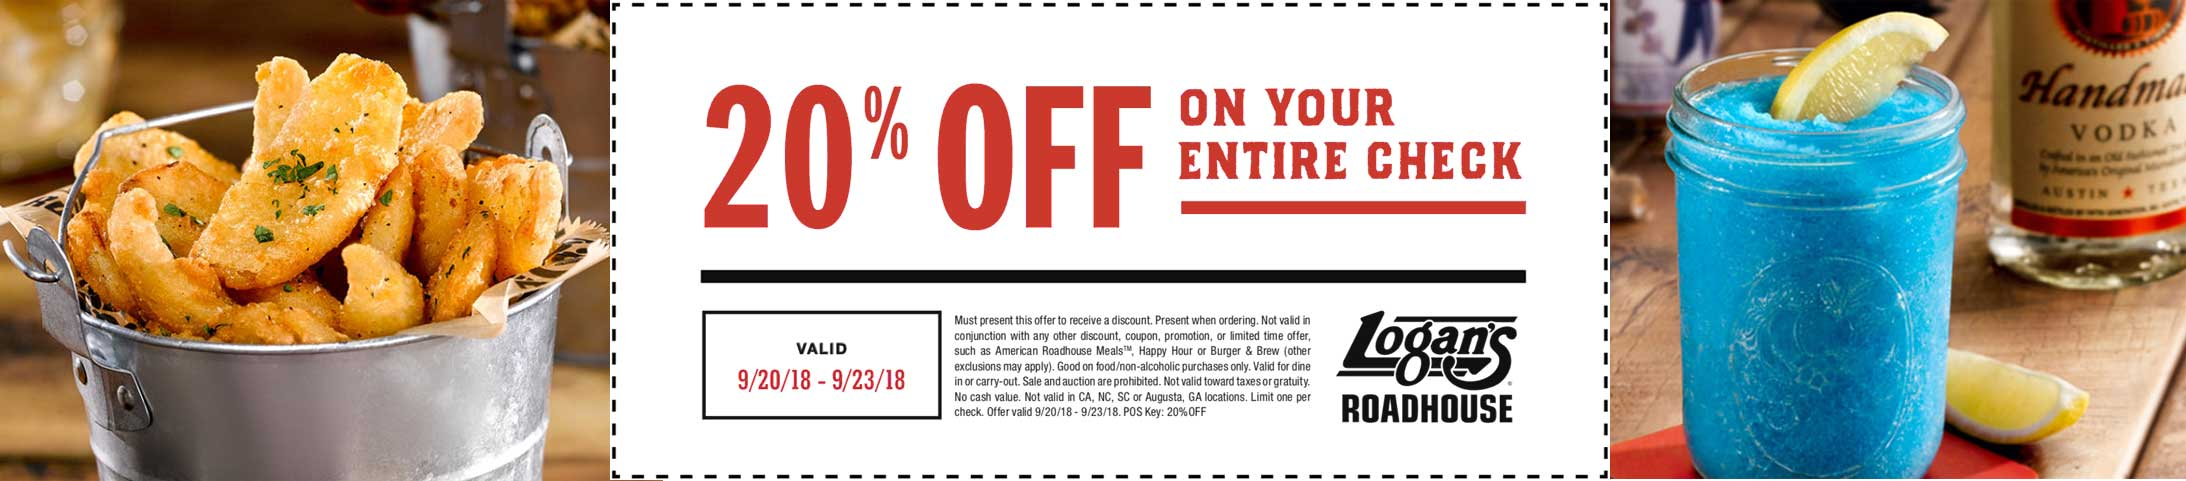 Logans Roadhouse Coupon August 2019 20% off at Logans Roadhouse restaurants